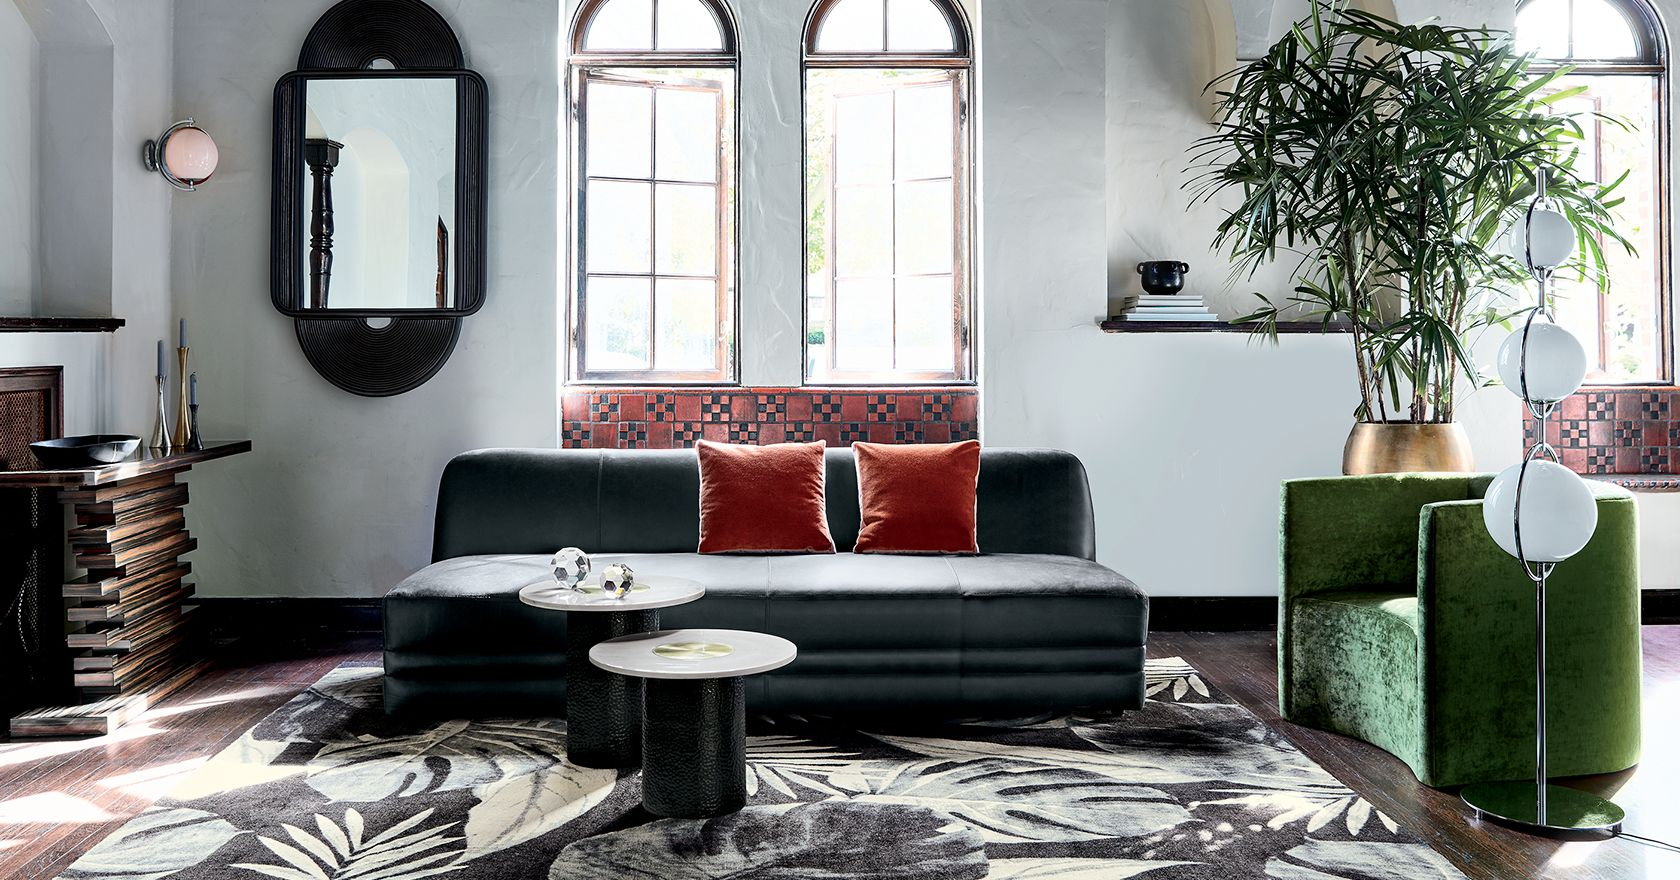 Stunning new silhouettes shop new furniture